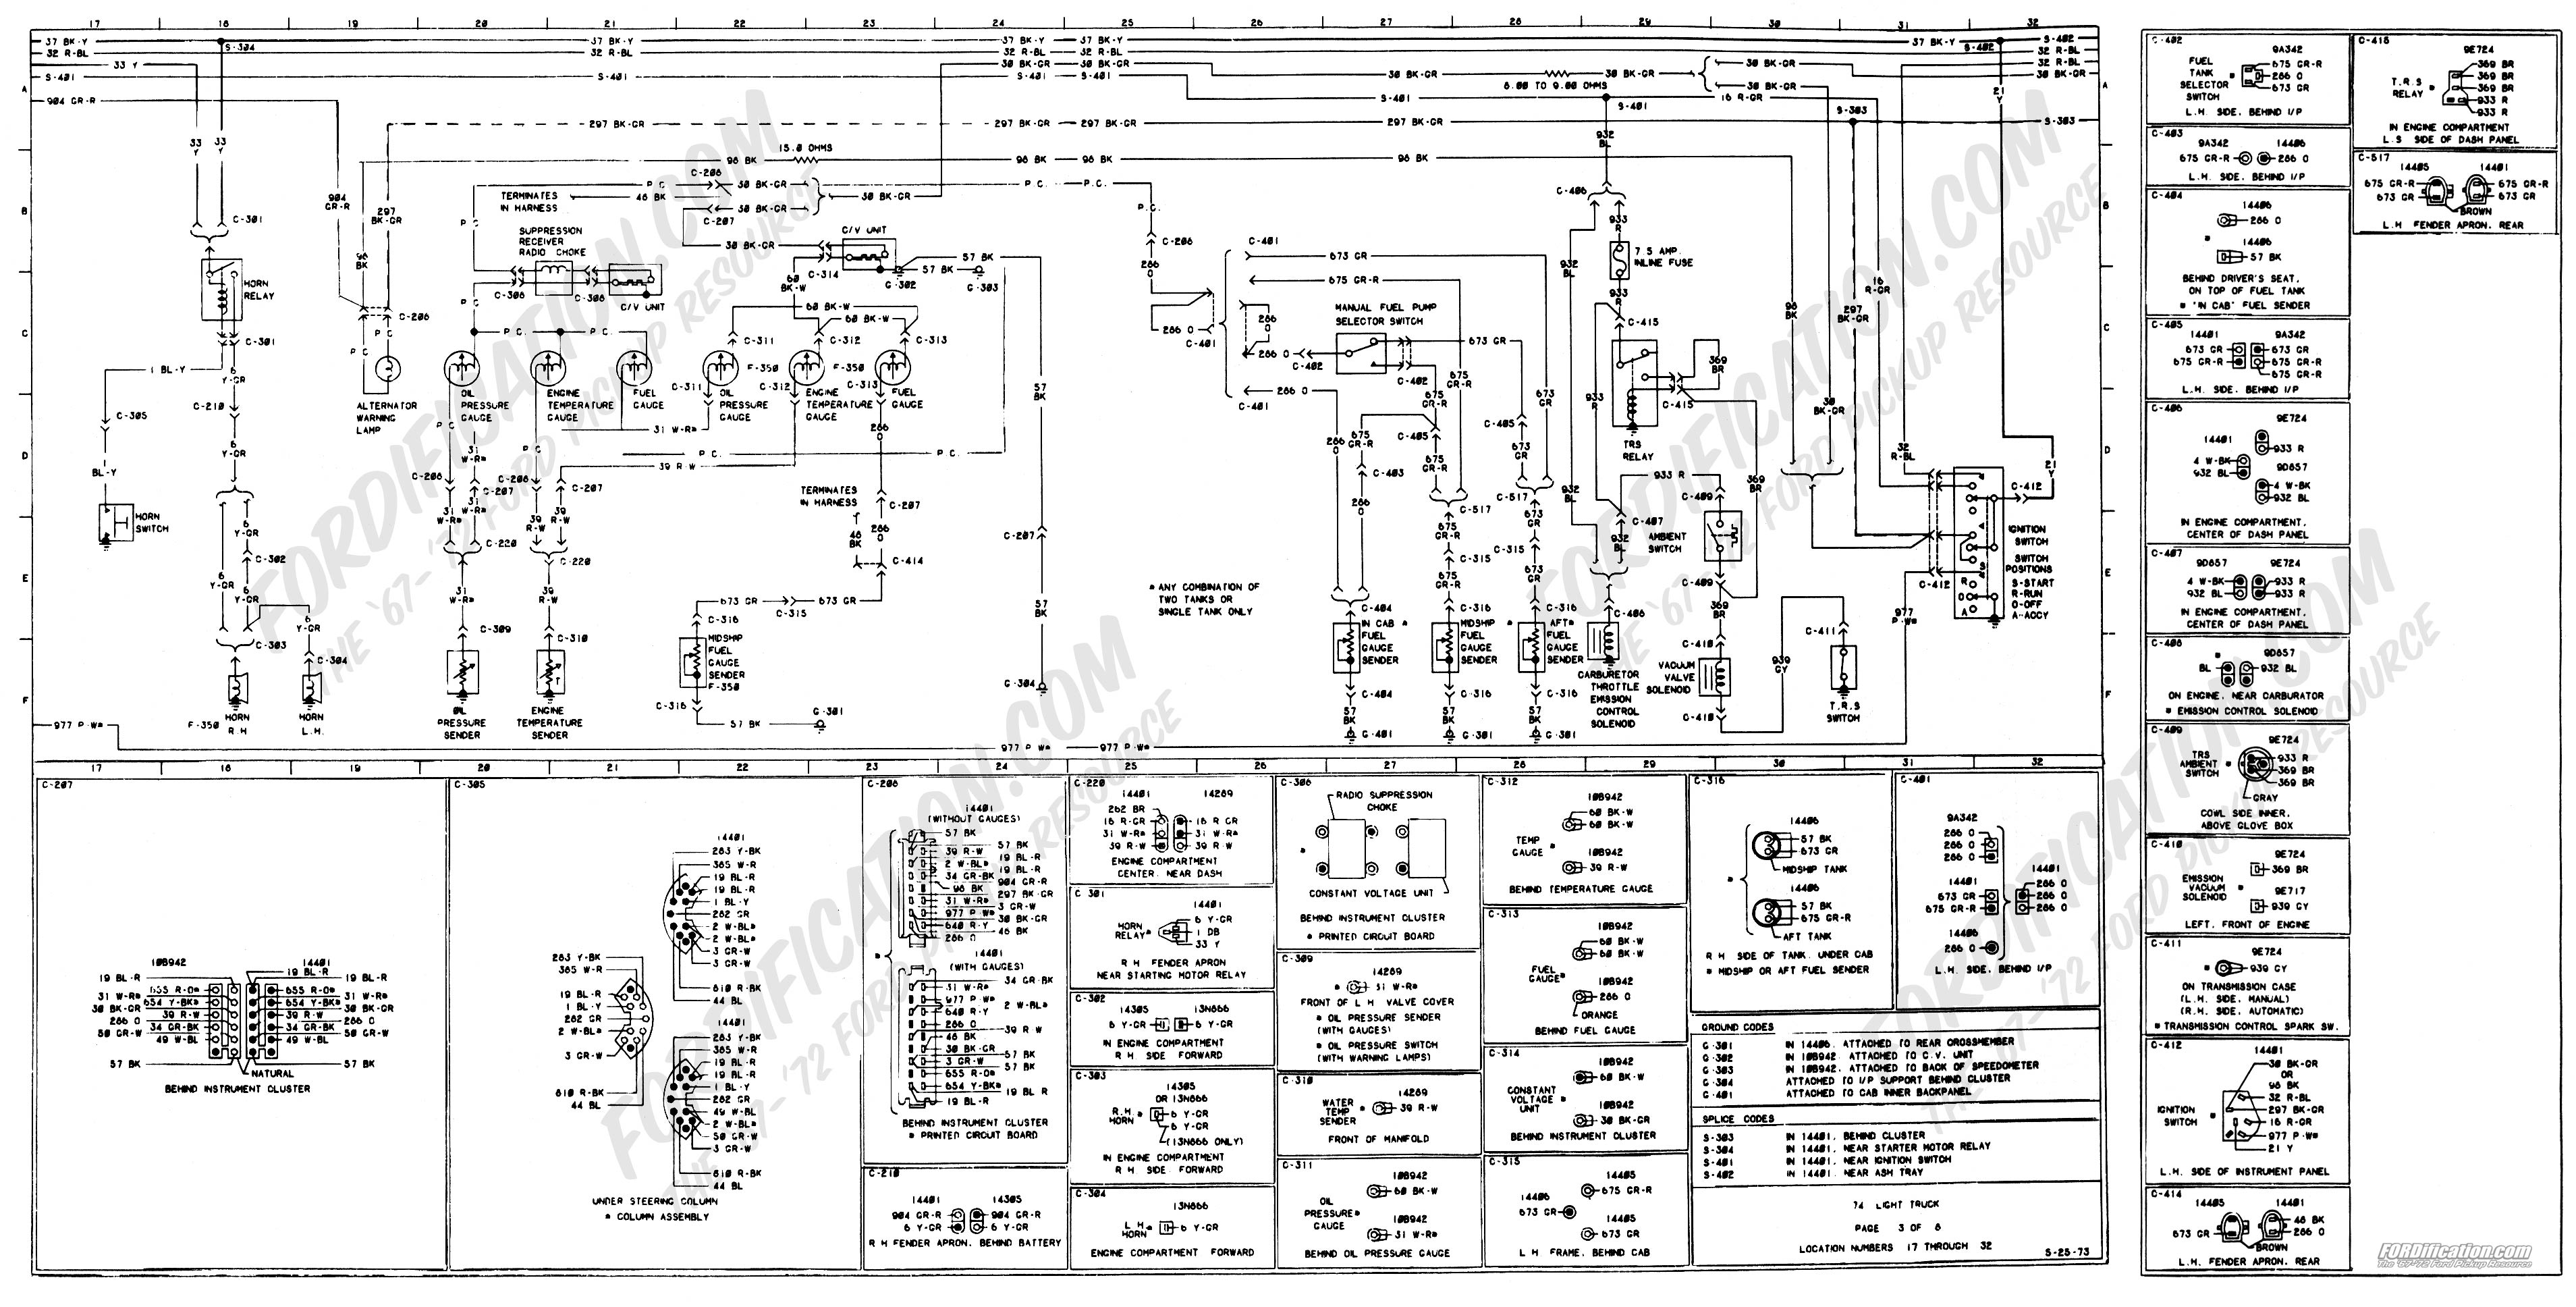 wiring_74master_3of8 1973 1979 ford truck wiring diagrams & schematics fordification net 1979 ford truck fuse box diagram at reclaimingppi.co